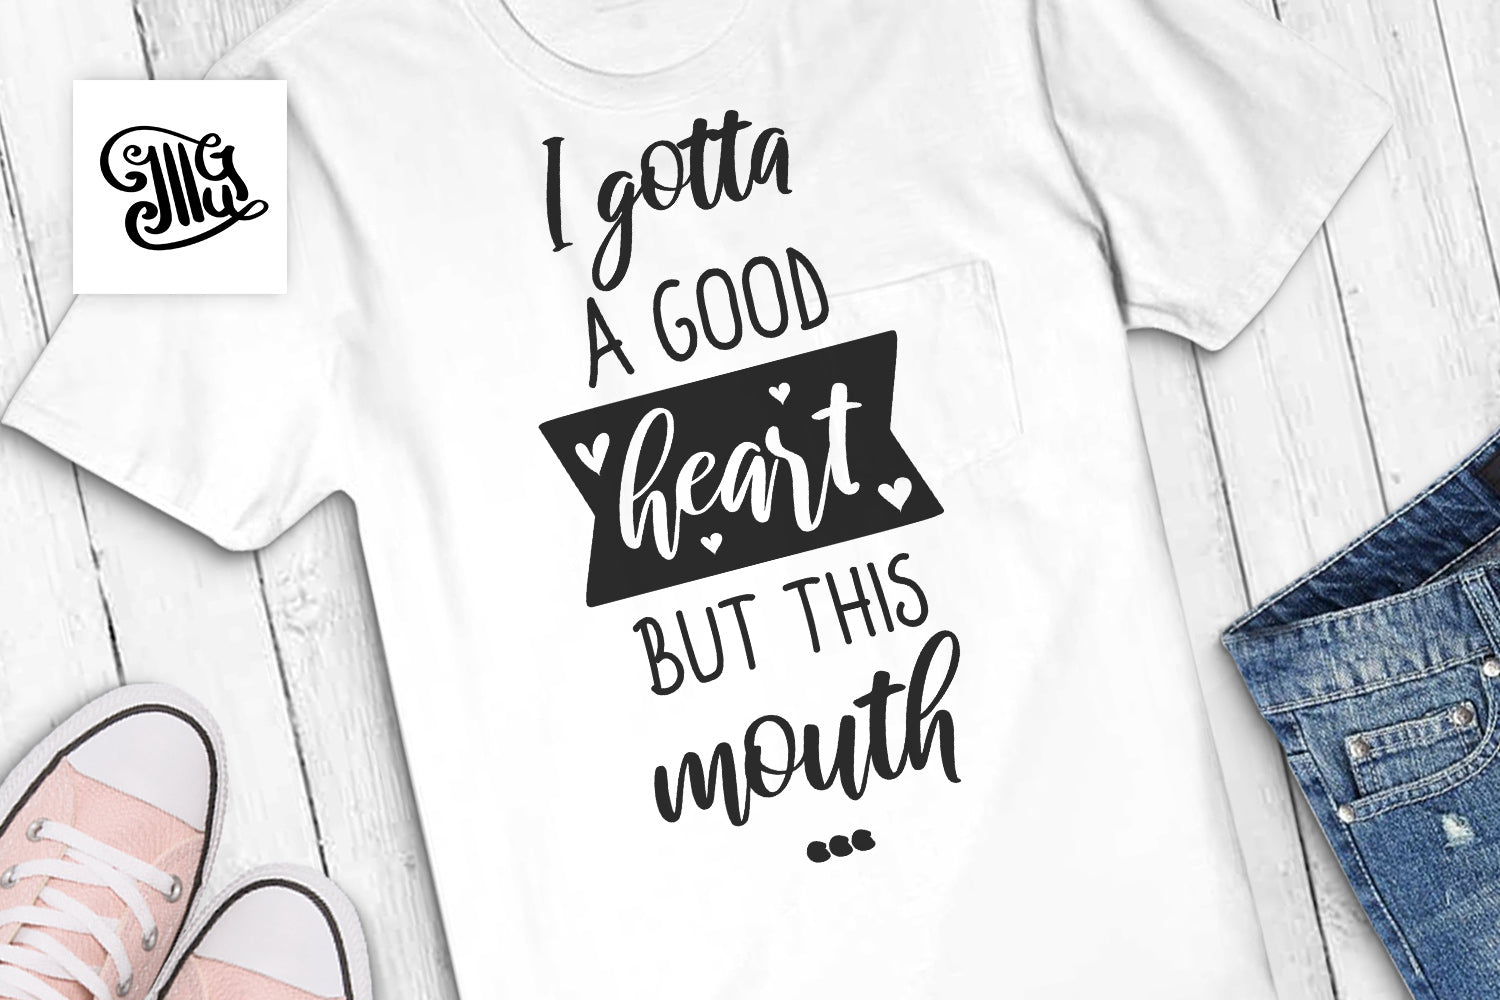 I gotta a good heart but this mouth... svg | Southern SVG | Sassy SVG | Girl svg-by Illustrator Guru